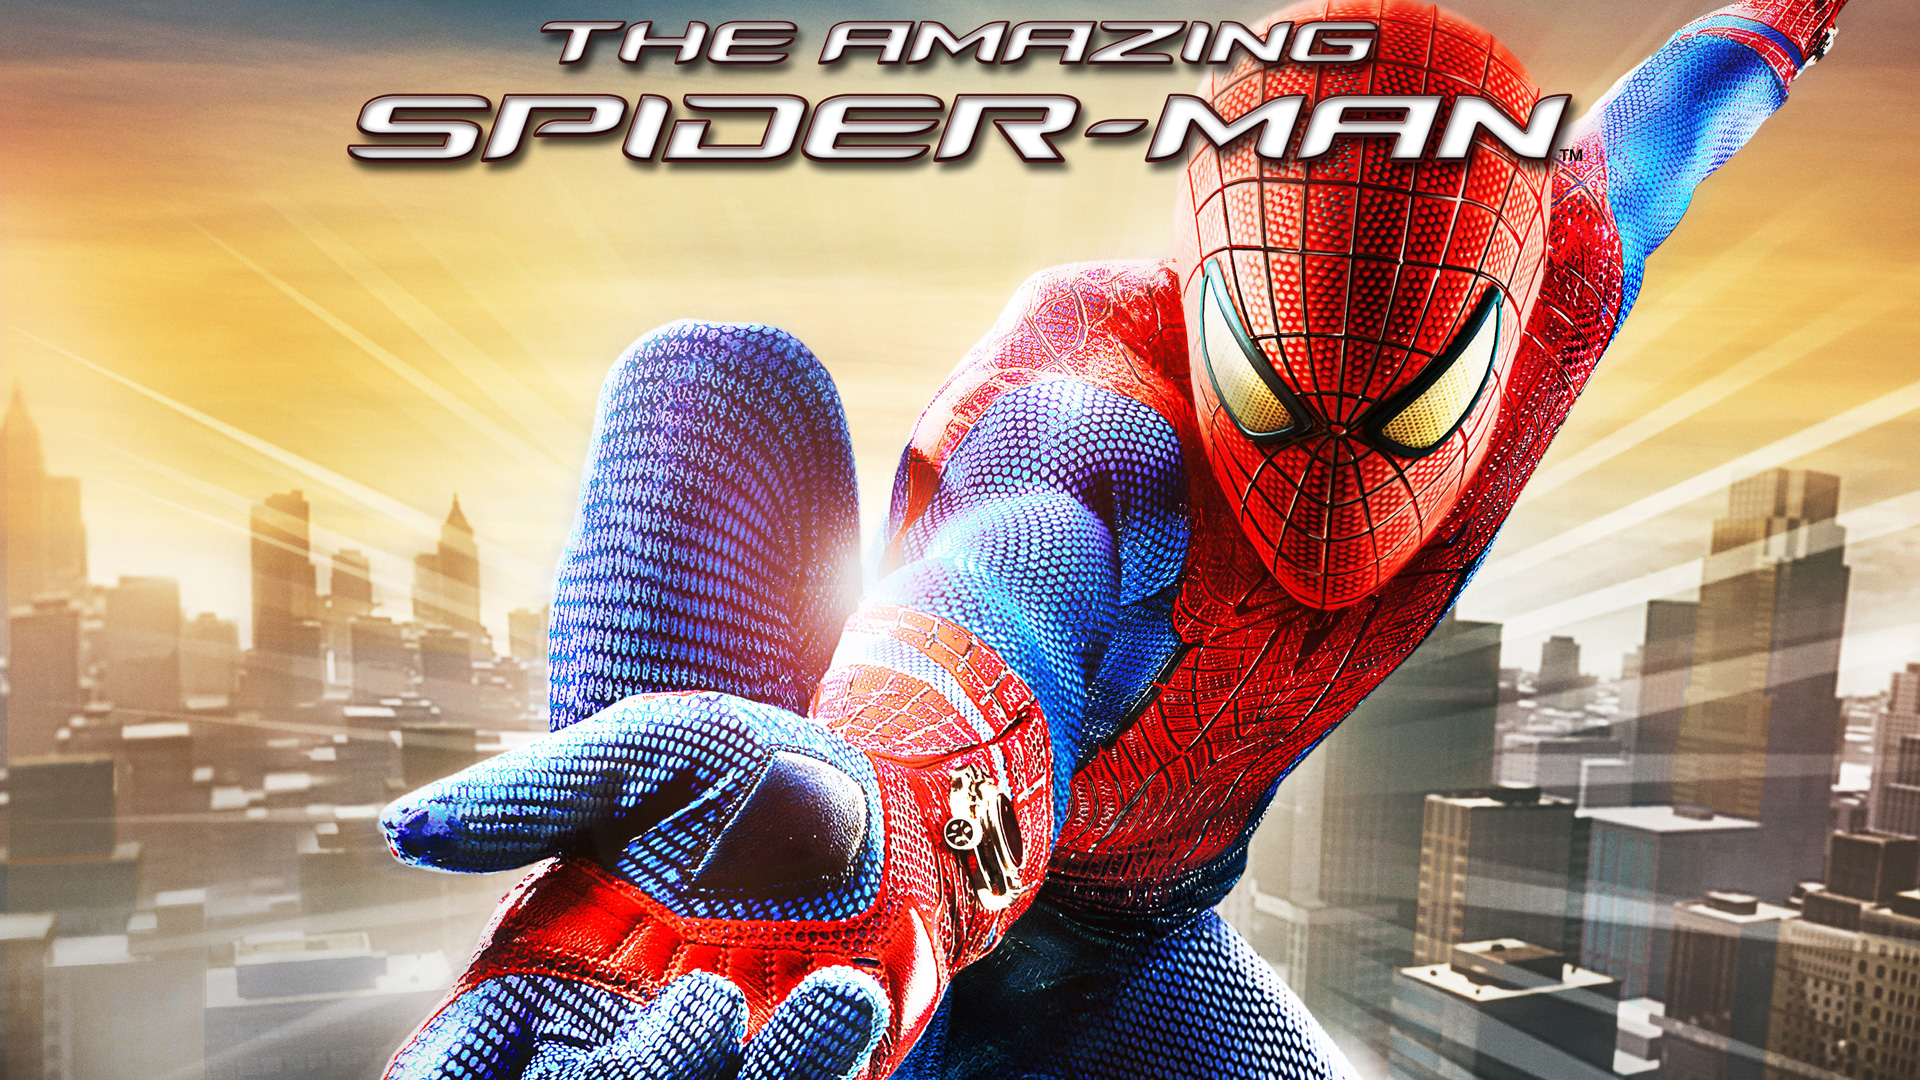 The Amazing Spider-Man Game wallpaper 3